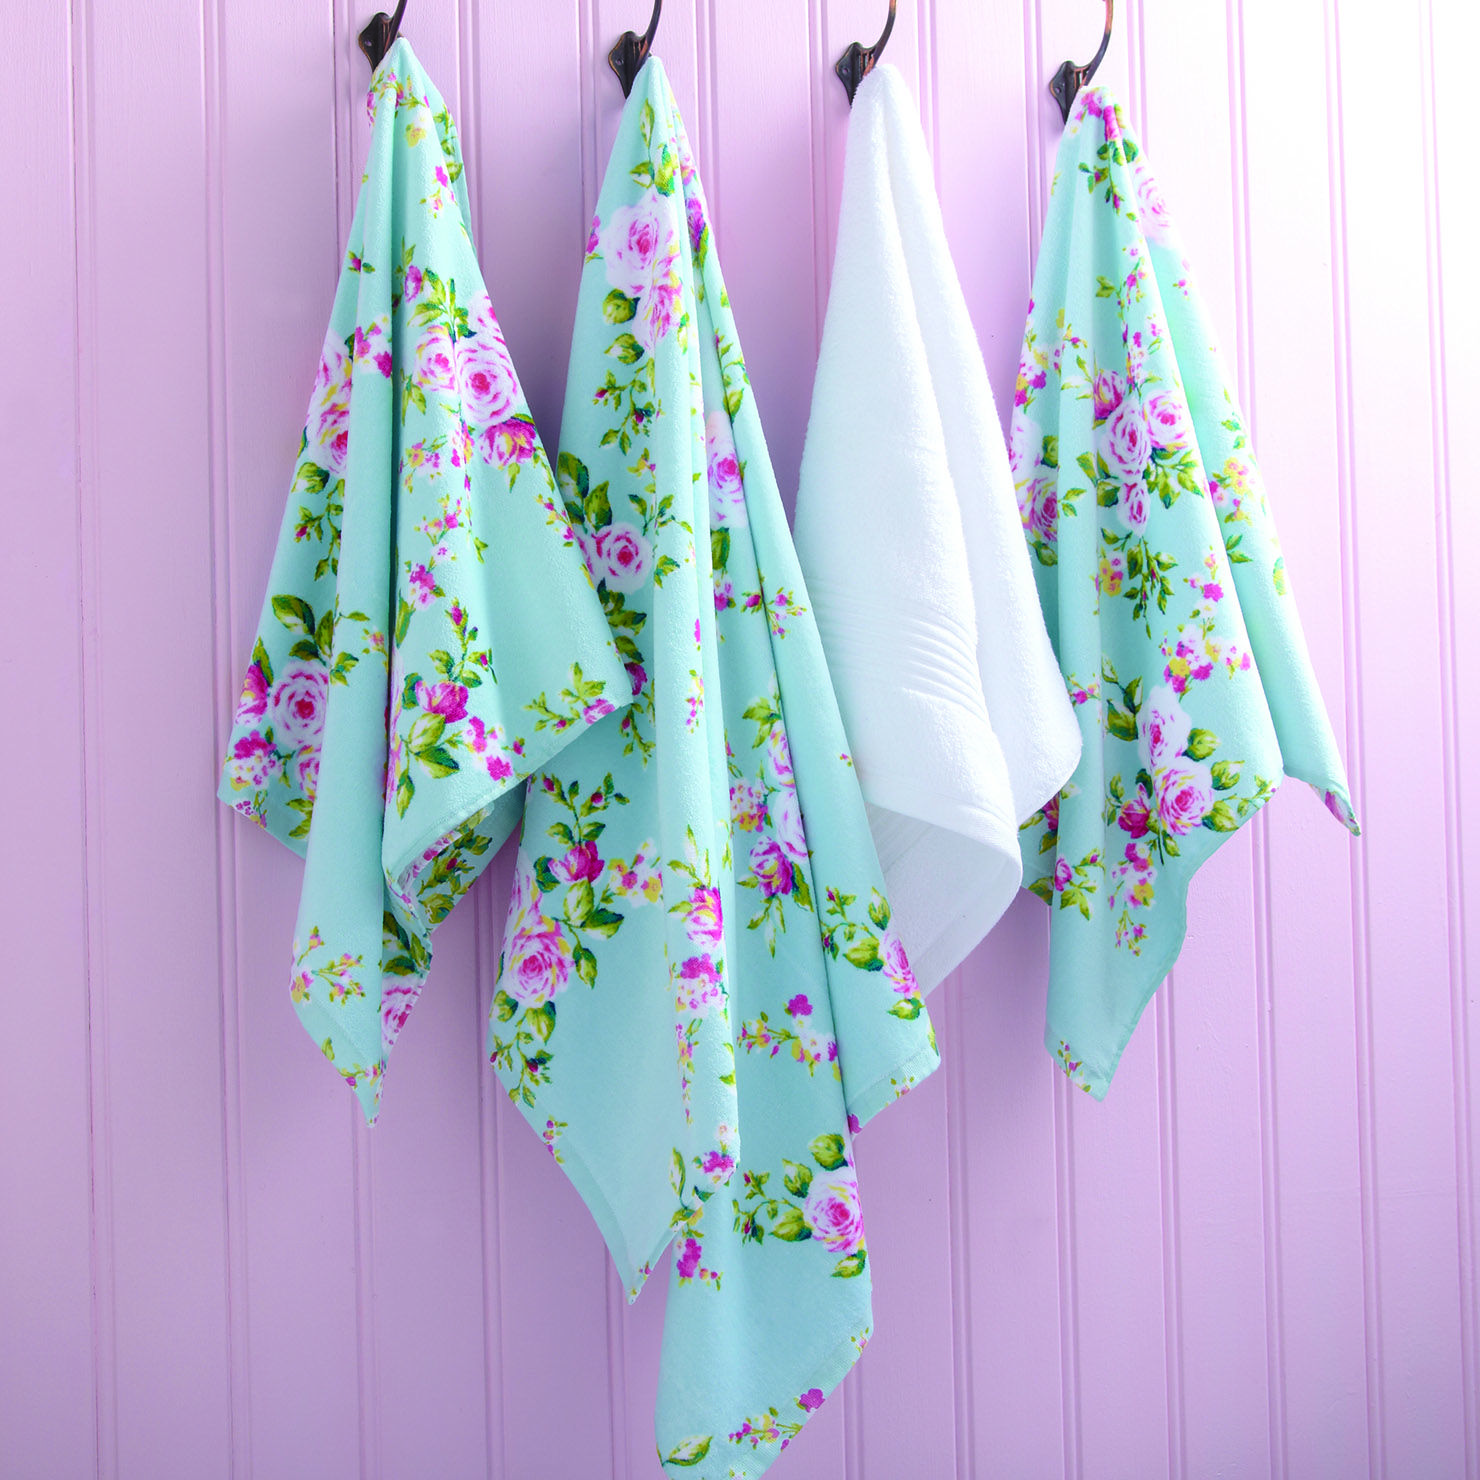 I Love These Printed Canterbury Towels From Catherine Lansfield - Plum towels for small bathroom ideas